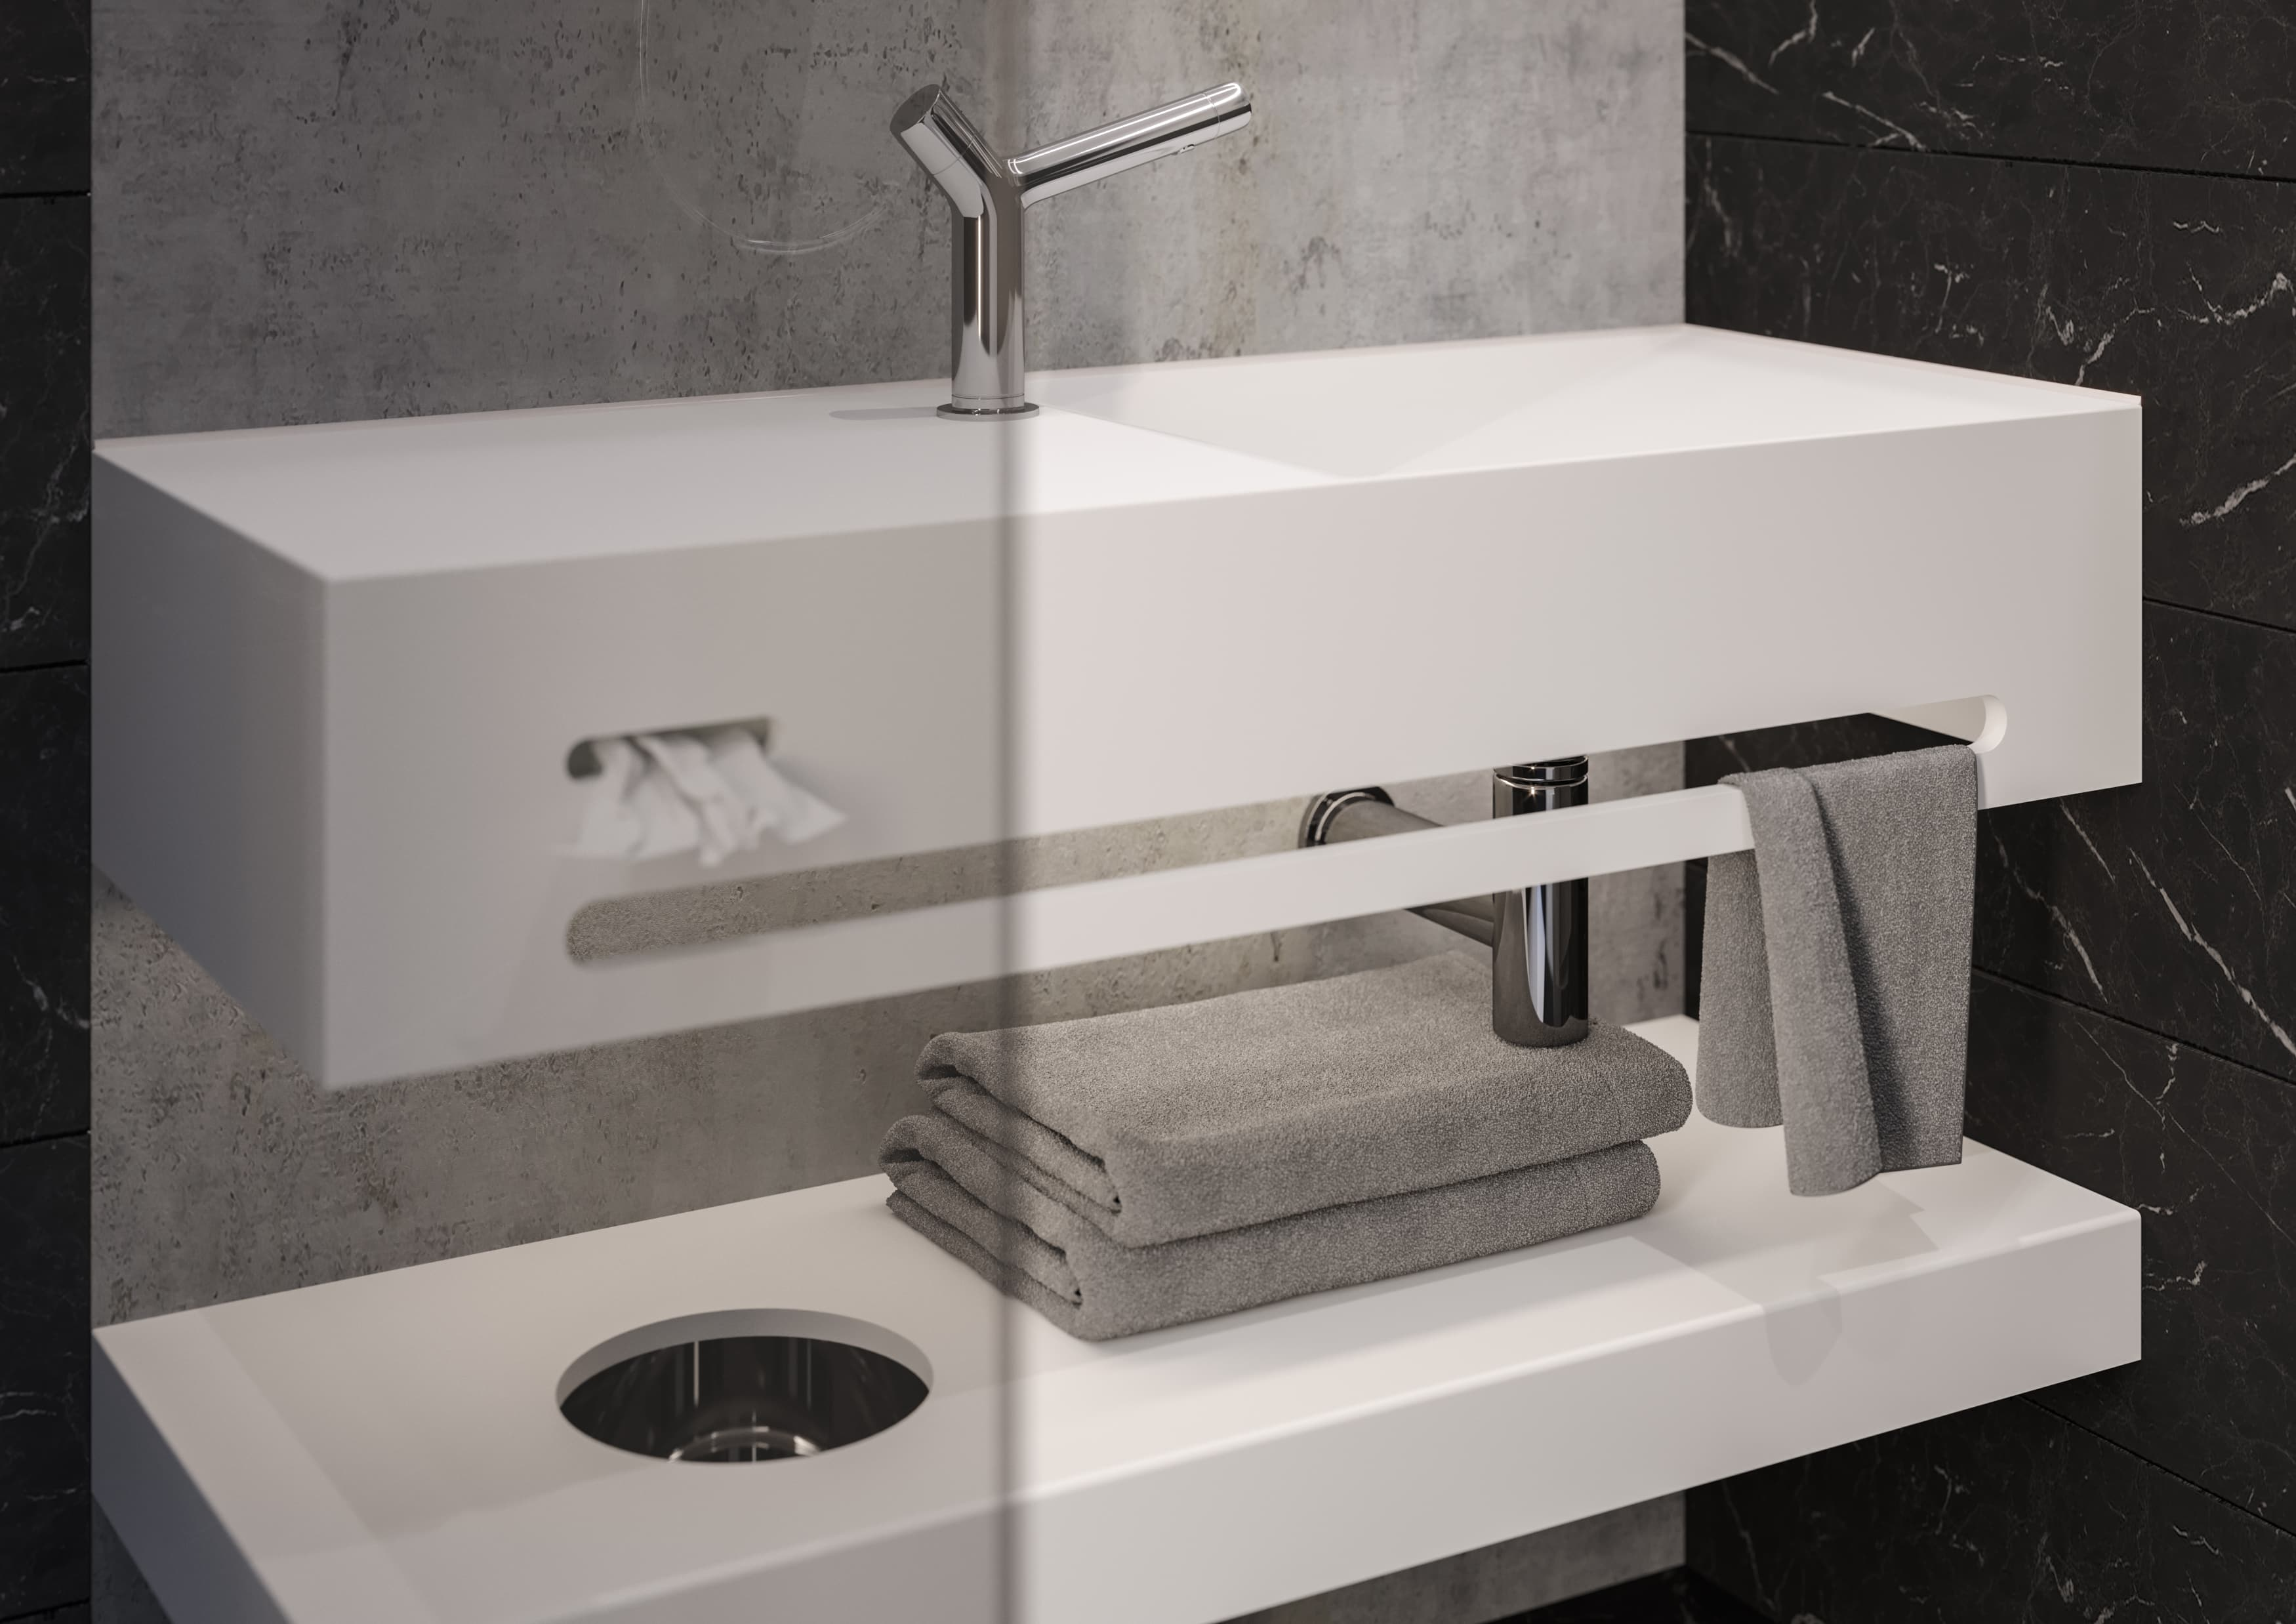 The complete bathroom console solution